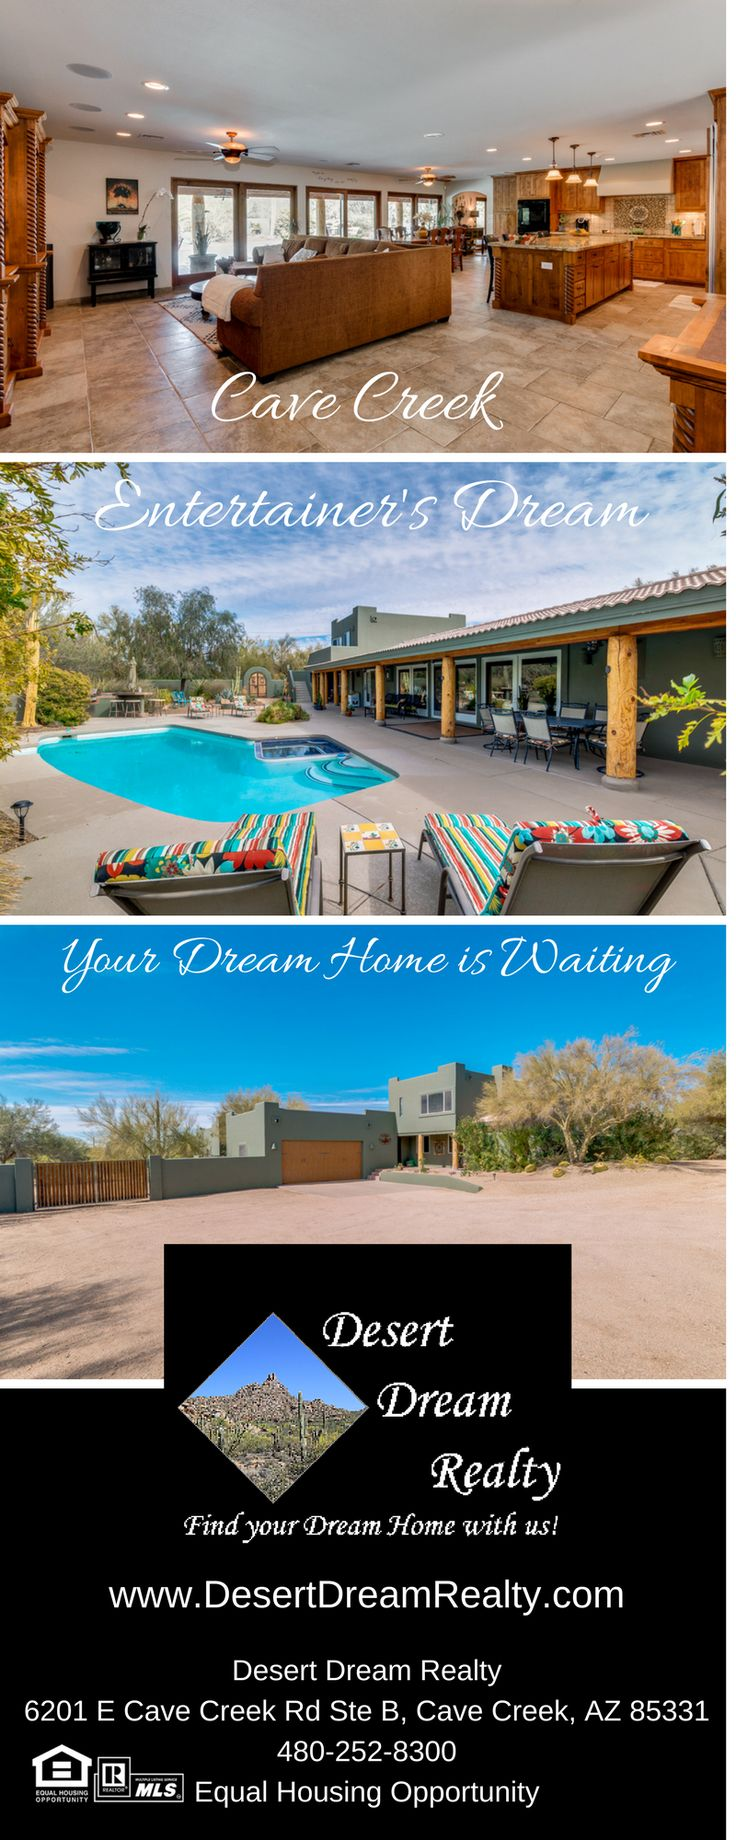 30250 N 66TH Street, Cave Creek, AZ 85331 - Desert Dream Realty - http://www.desertdreamrealty.com/listings/details/30250-n-66th-street-cave-creek-az/5726276/443228/ #desertdreamrealty #cavecreekhomesforsale #Cavecreekrealestate #cavecreekhorseproperty